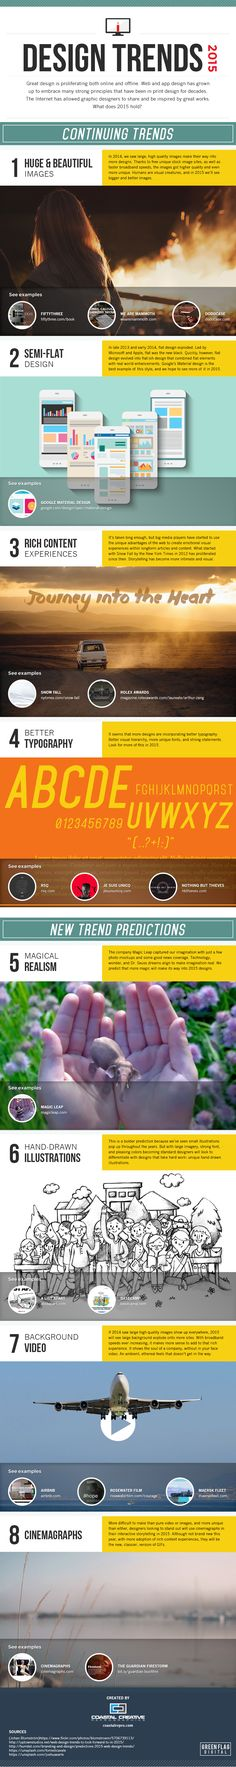 Need a New Website or Logo? Design Trends for 2015. (Infographic) #design